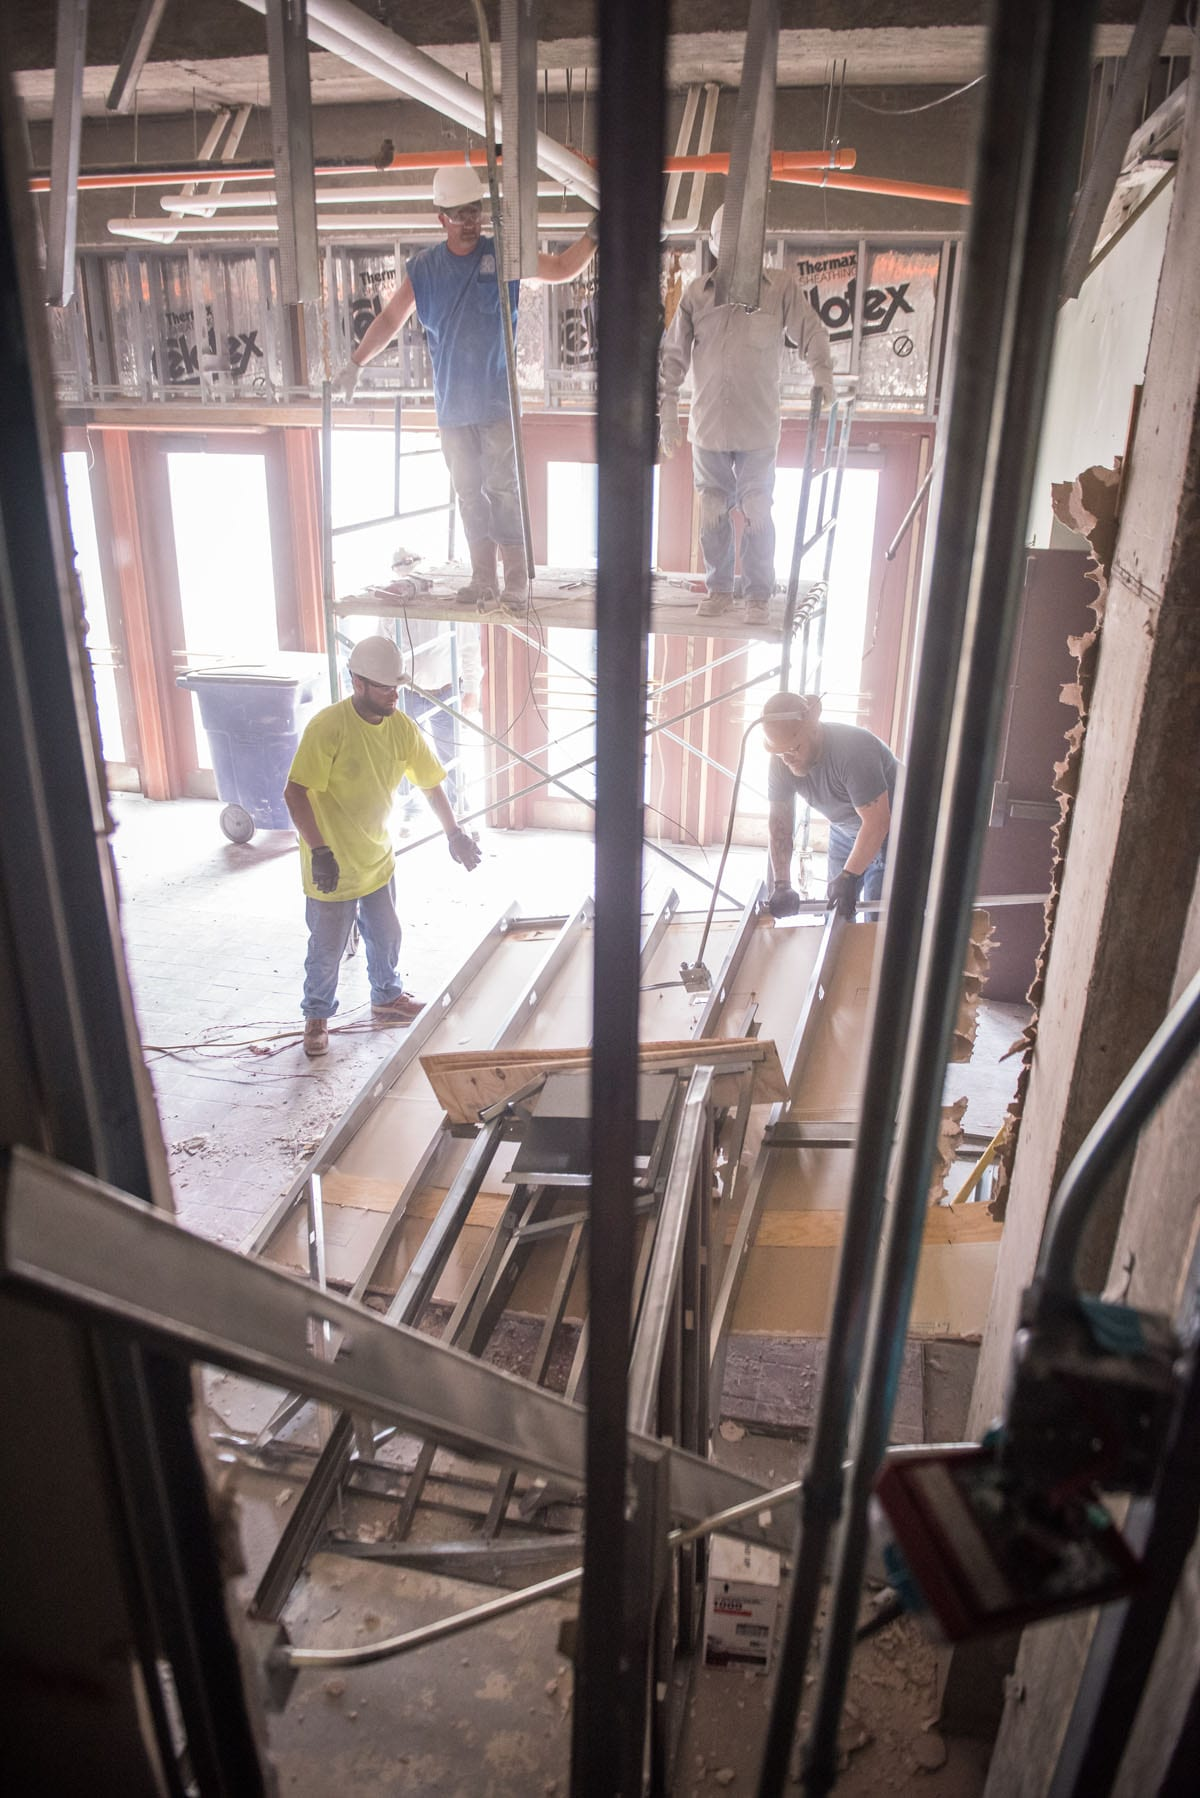 Four men, two on the ground and two elevated on scaffolding, are seen from behind pieces of metal framing lowering a piece of drywall to the floor.